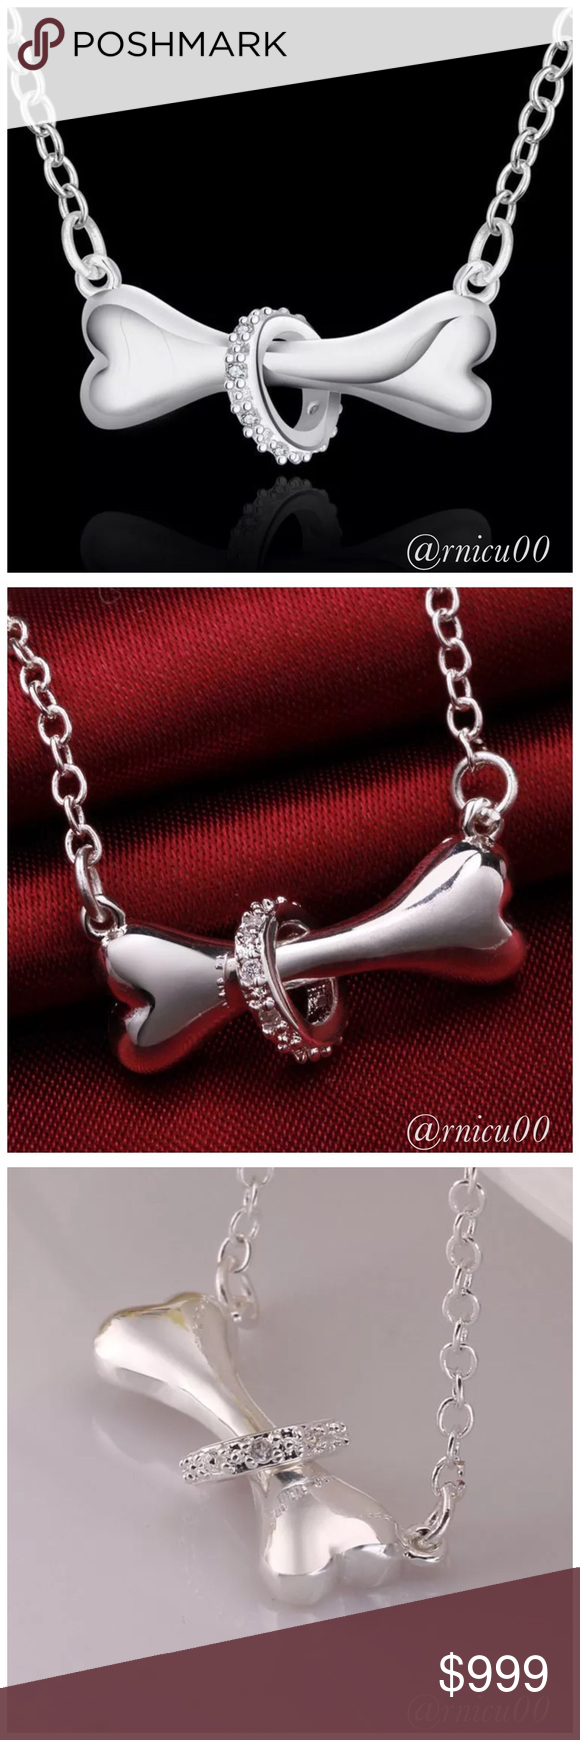 """✨Coming Soon-Silver Dog Bone & Crystal Necklace! Details Soon!  ➖Prices Firm, Bundle for 20% Discount ➖""""Trade"""" & Lowball Offers will be ignored ➖Sales are Final, Please read Description & Ask Any Questions! Boutique Jewelry Necklaces"""